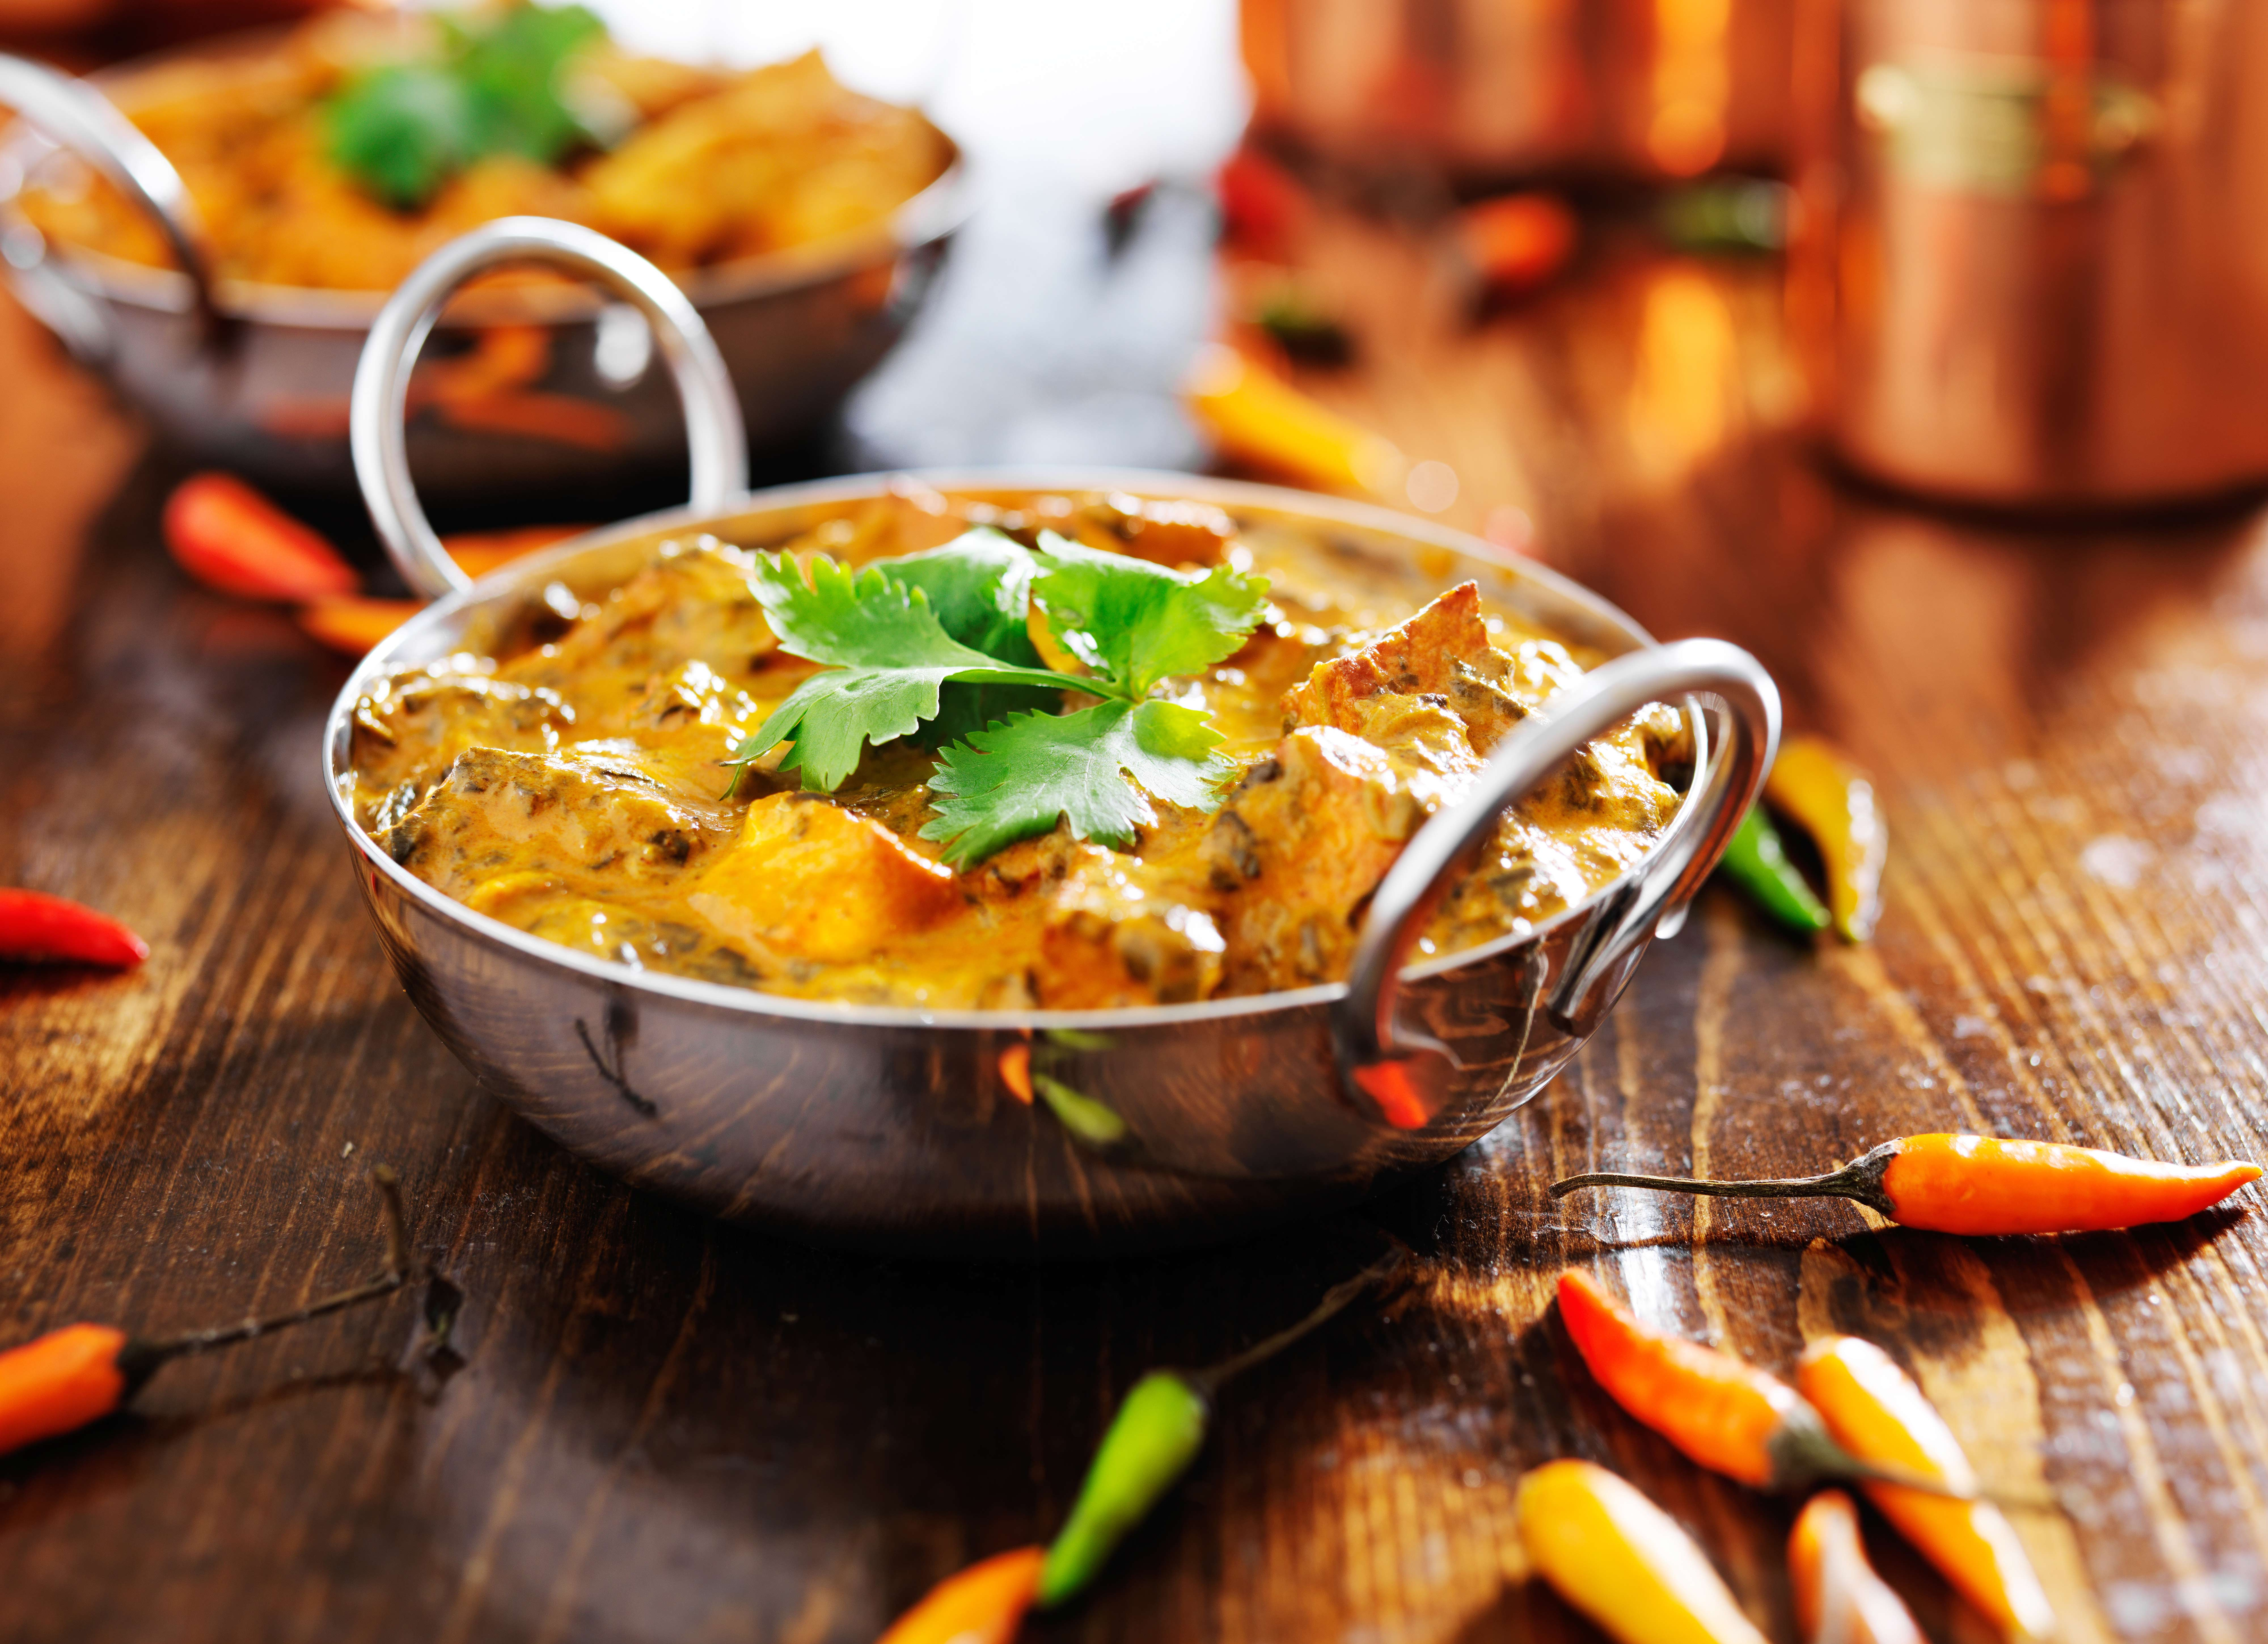 Authentic India Cuisine, India's must see